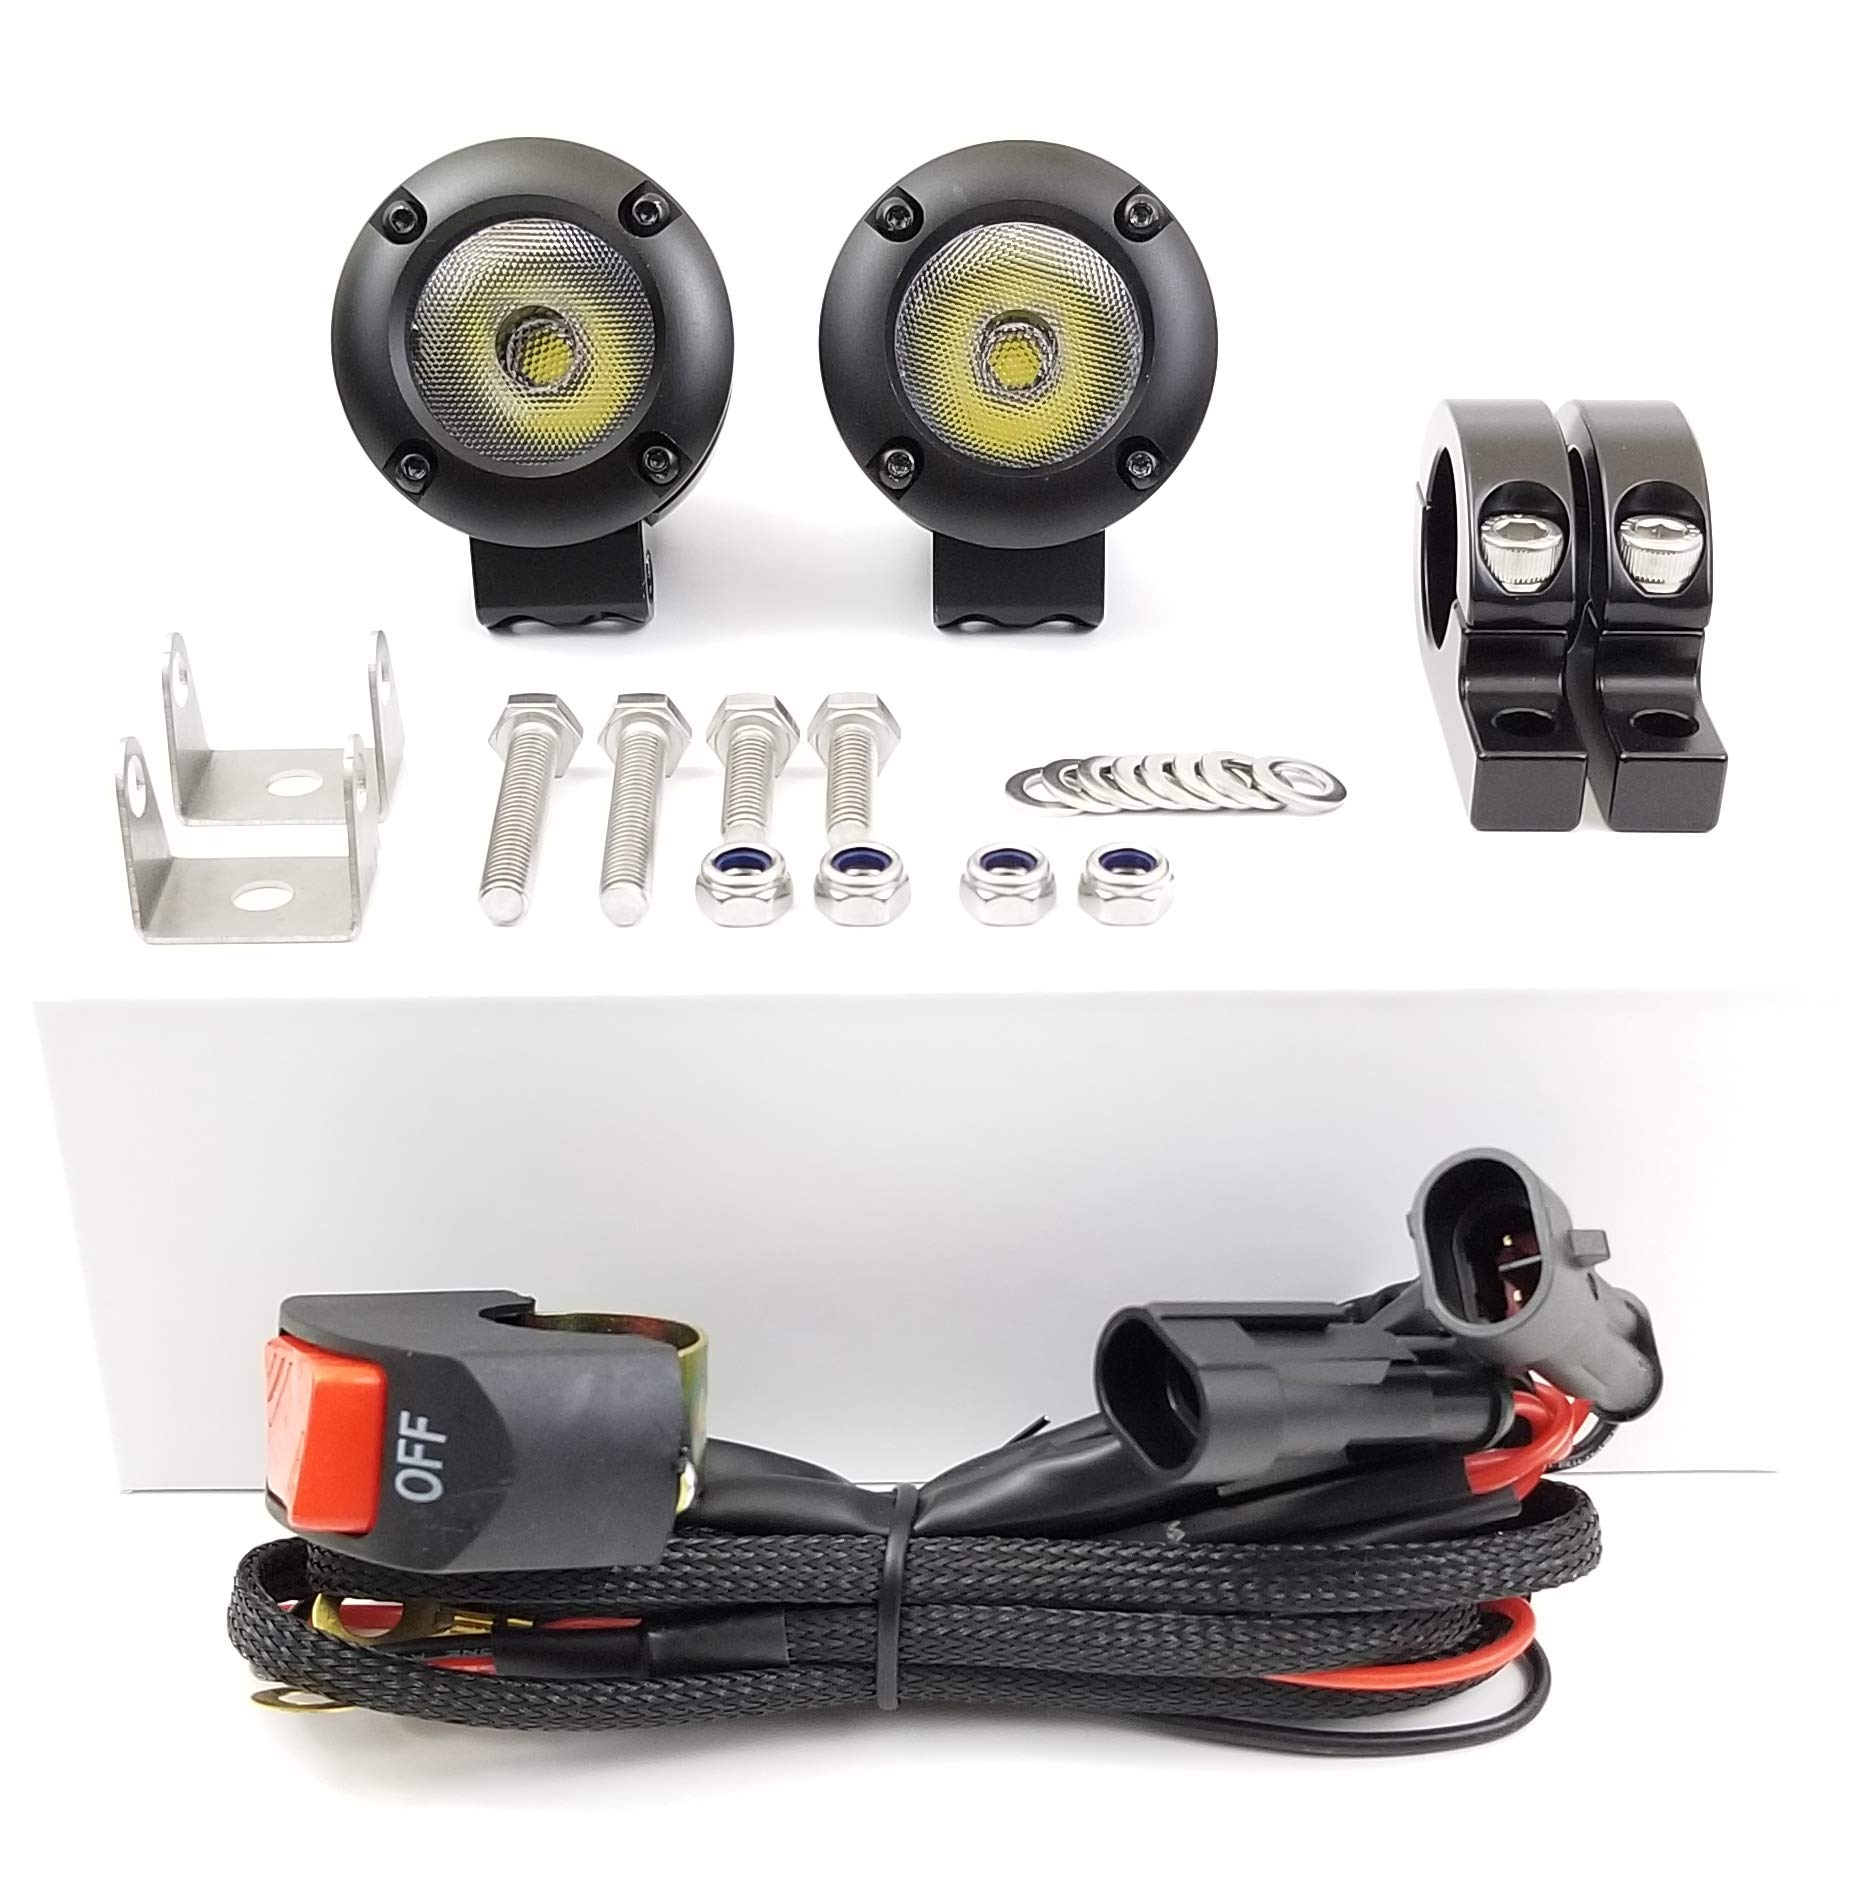 Thumper Jockey Crusader Light Kit